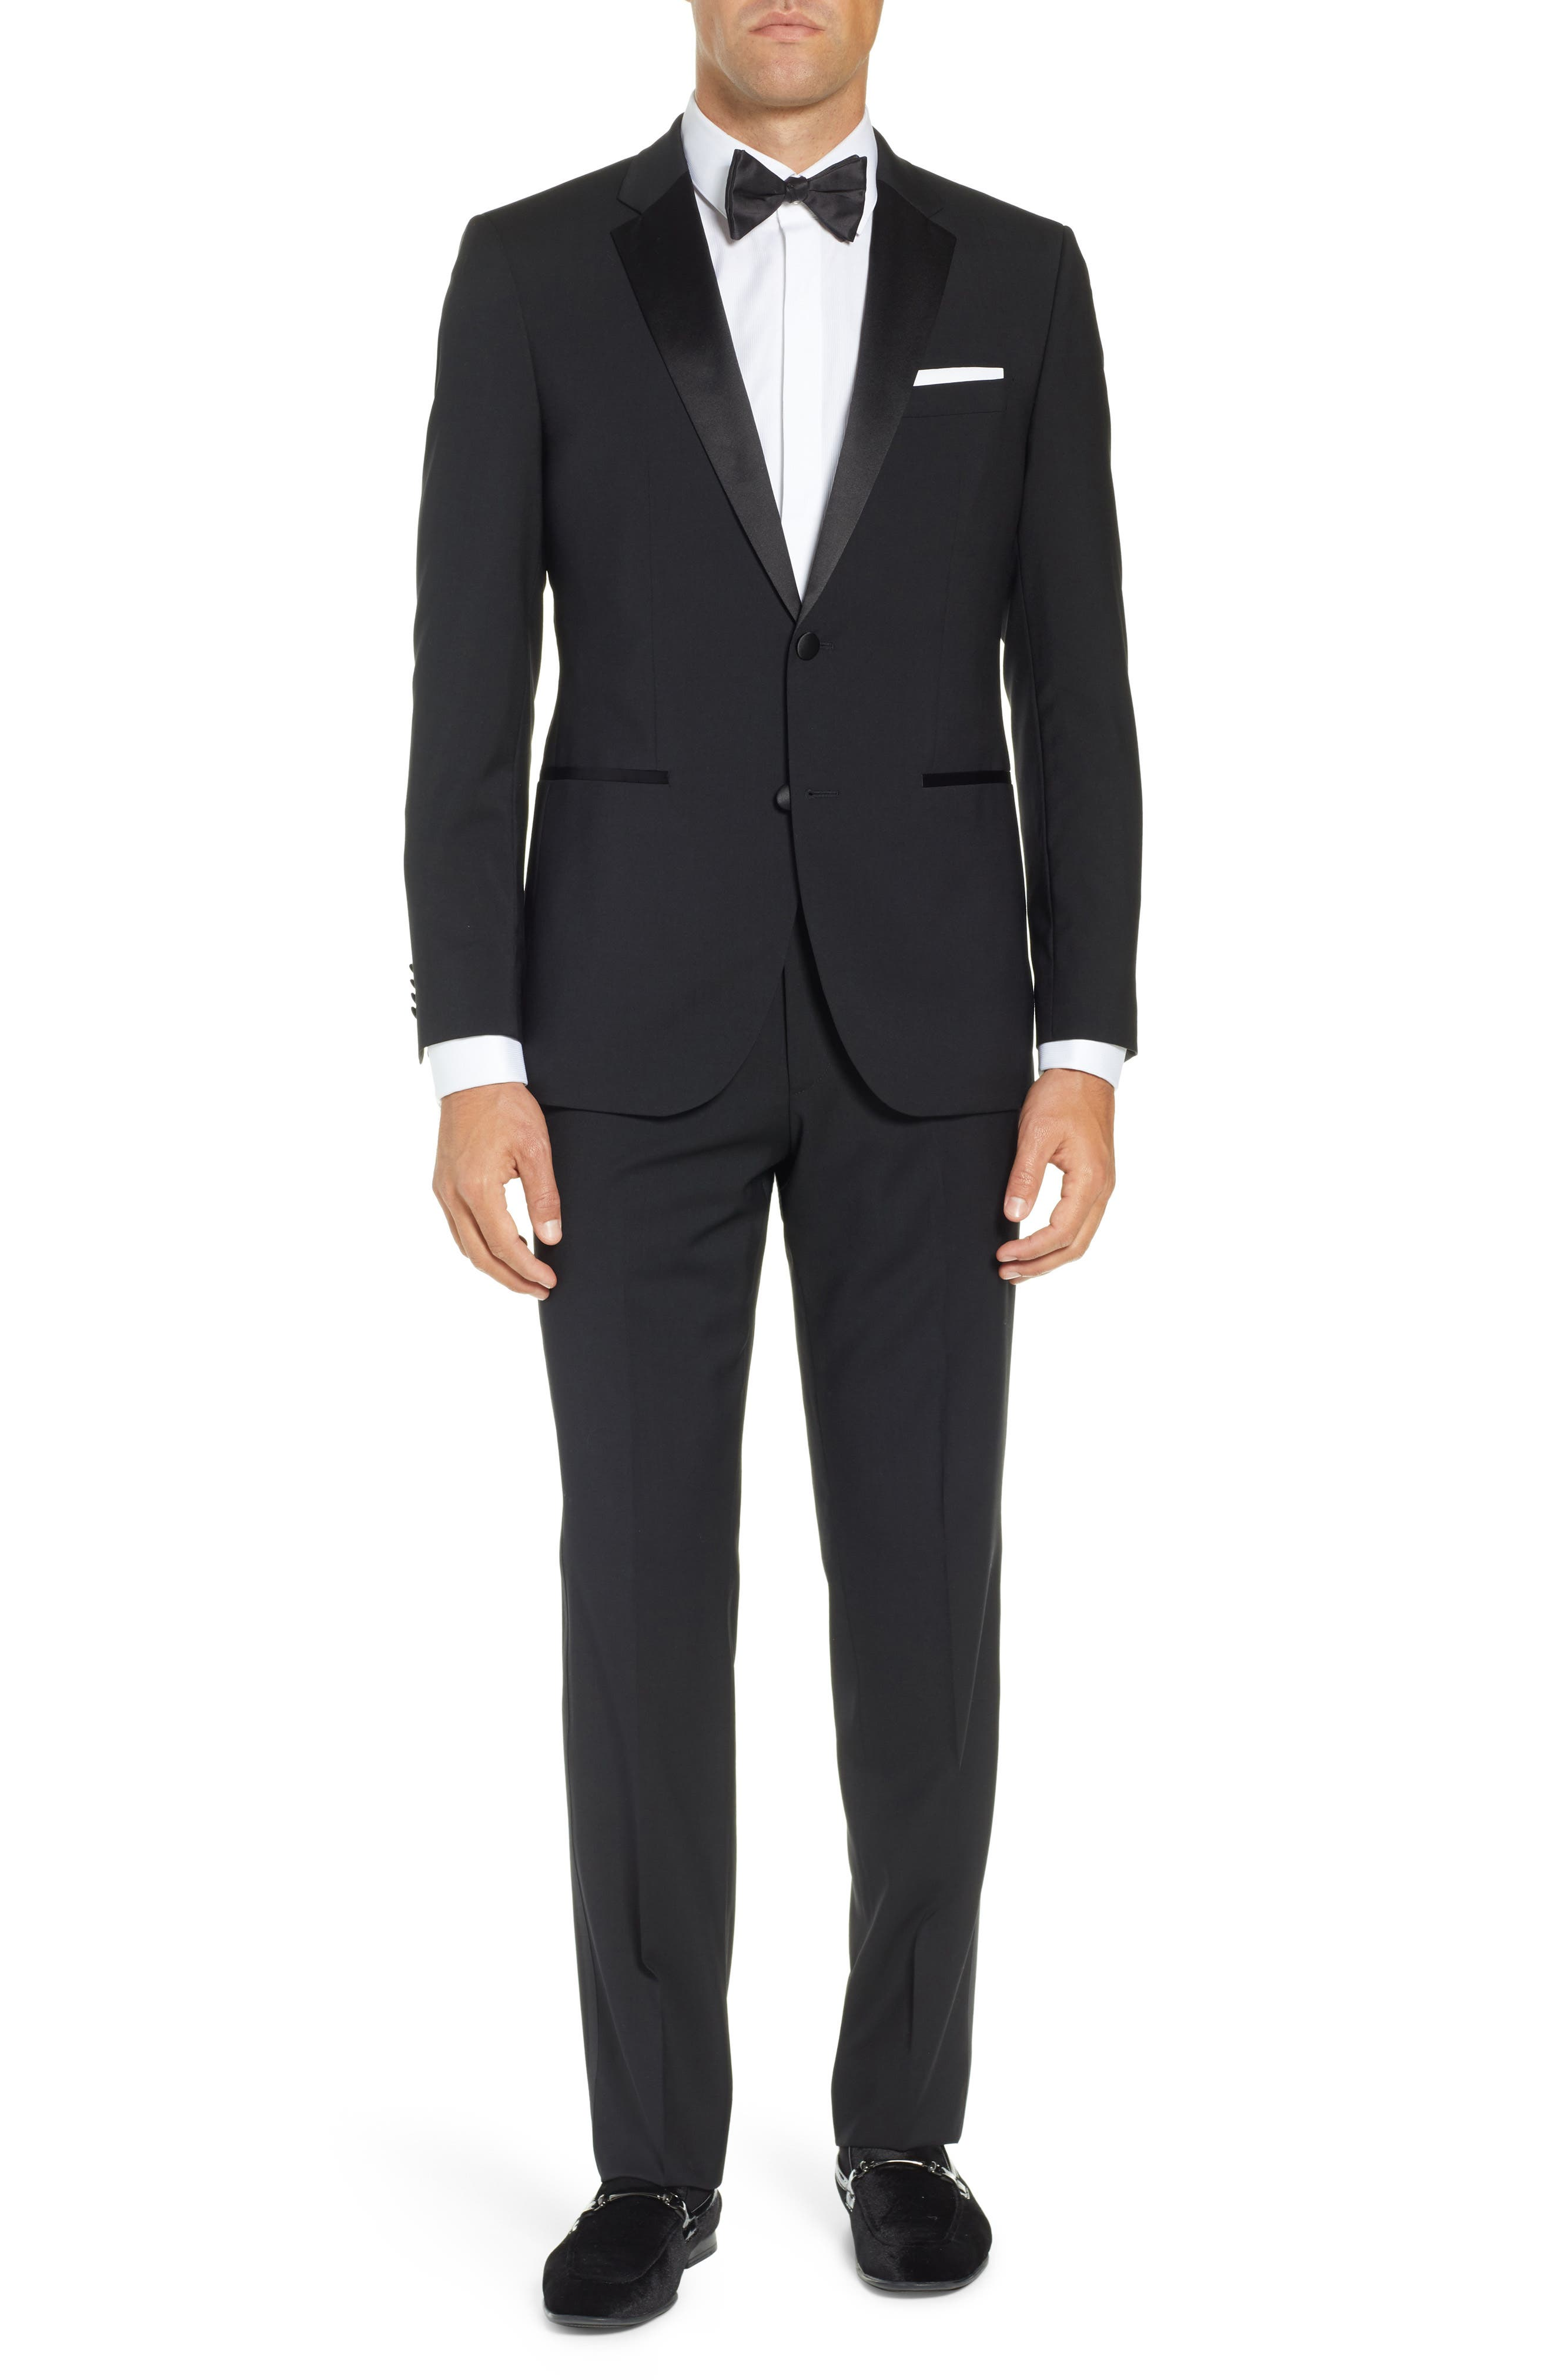 BOSS,                             The Stars/Glamour Trim Fit Wool Tuxedo,                             Main thumbnail 1, color,                             001